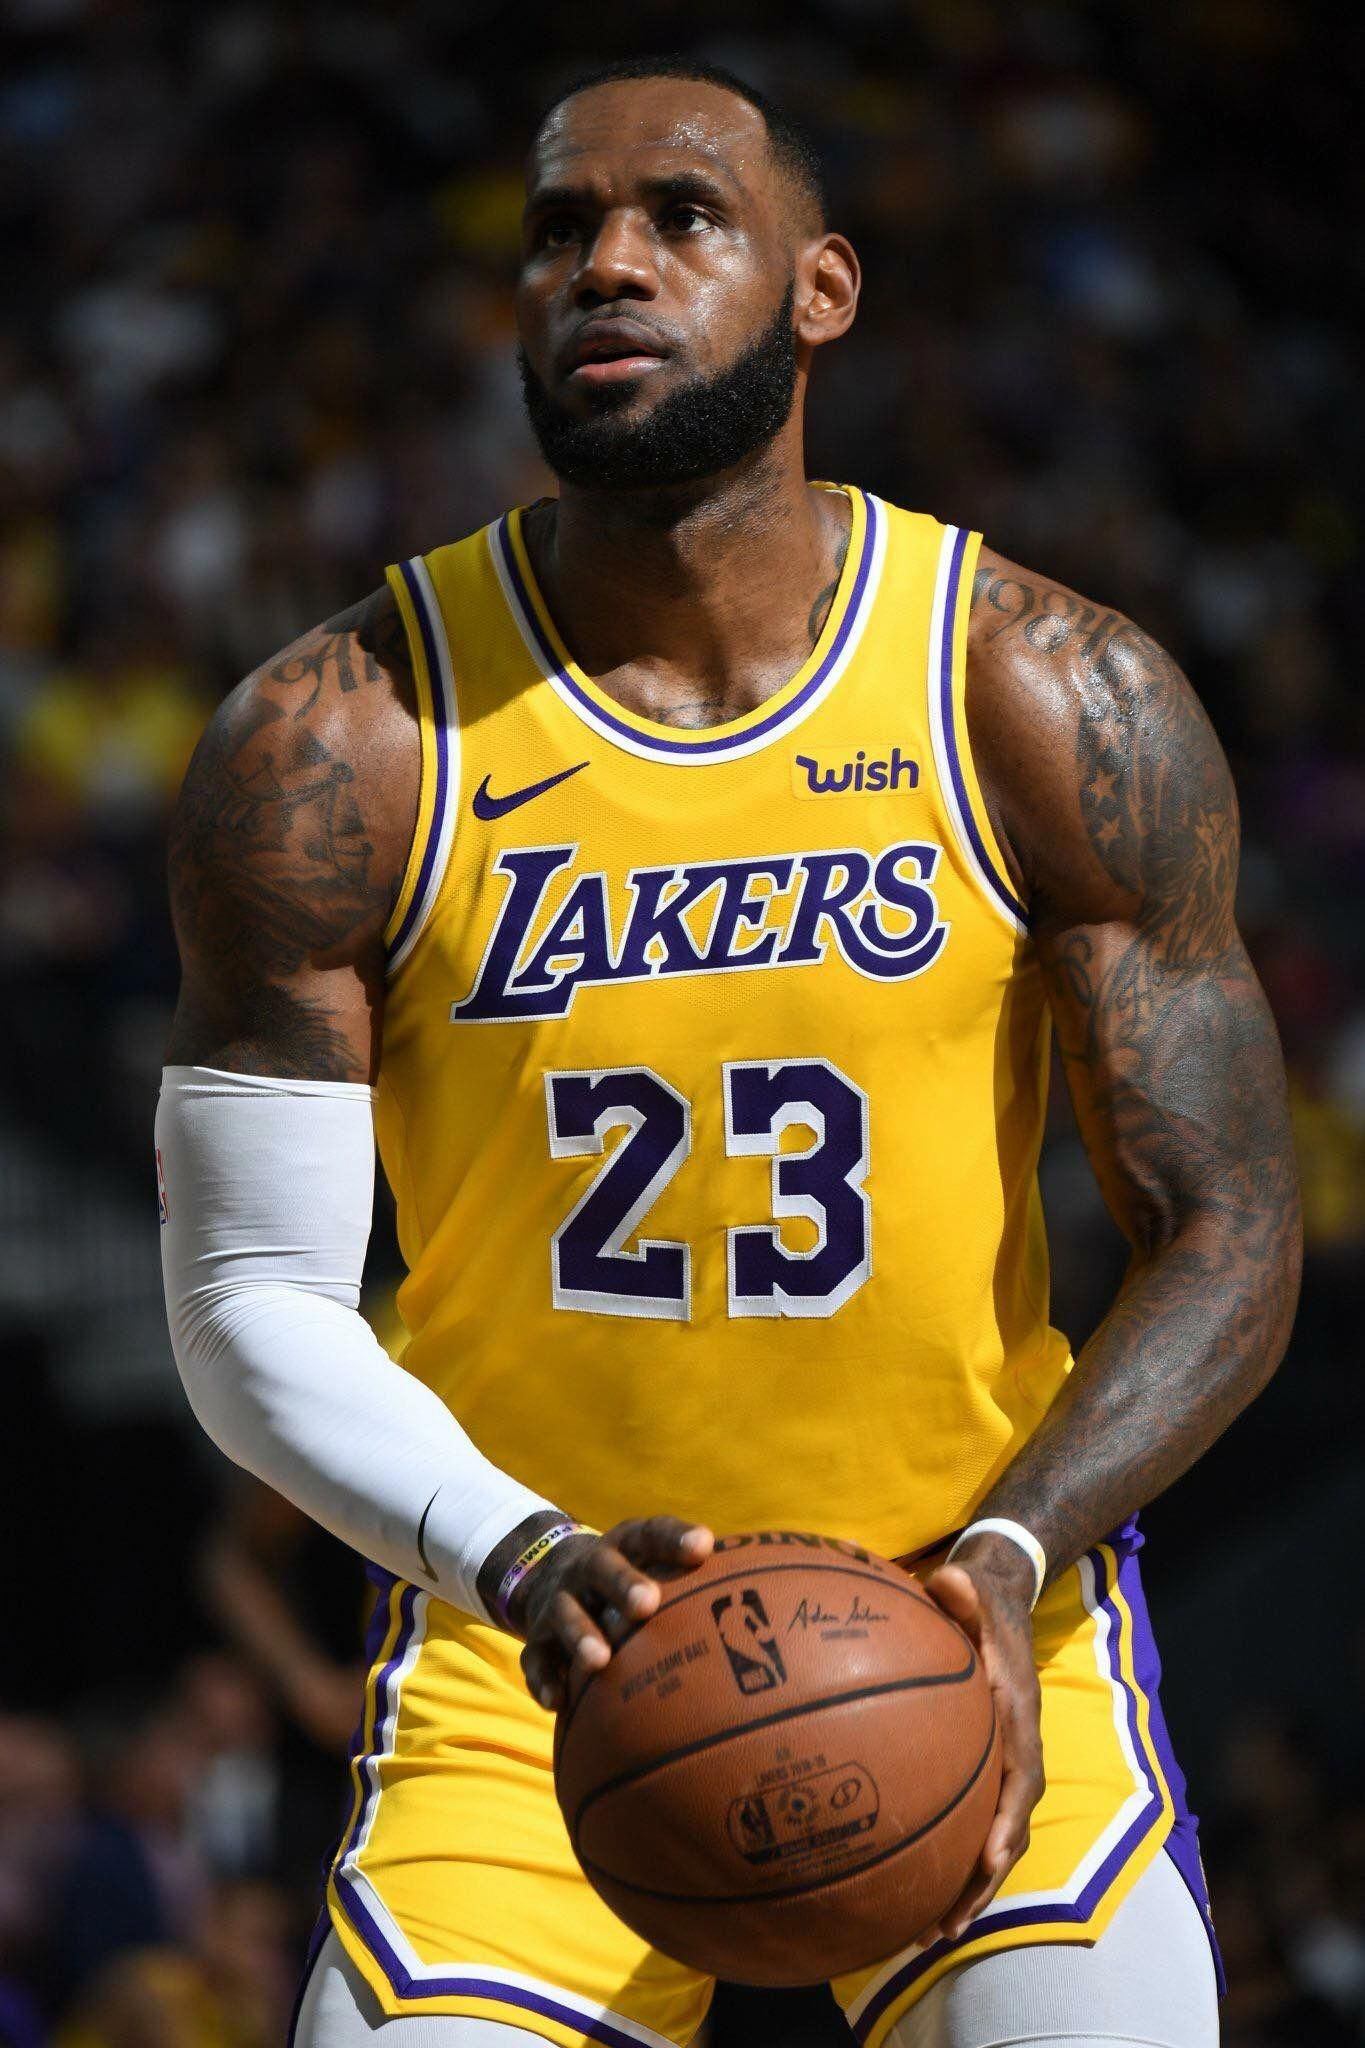 basketballpictures Lebron James Lakers c2f8cd633